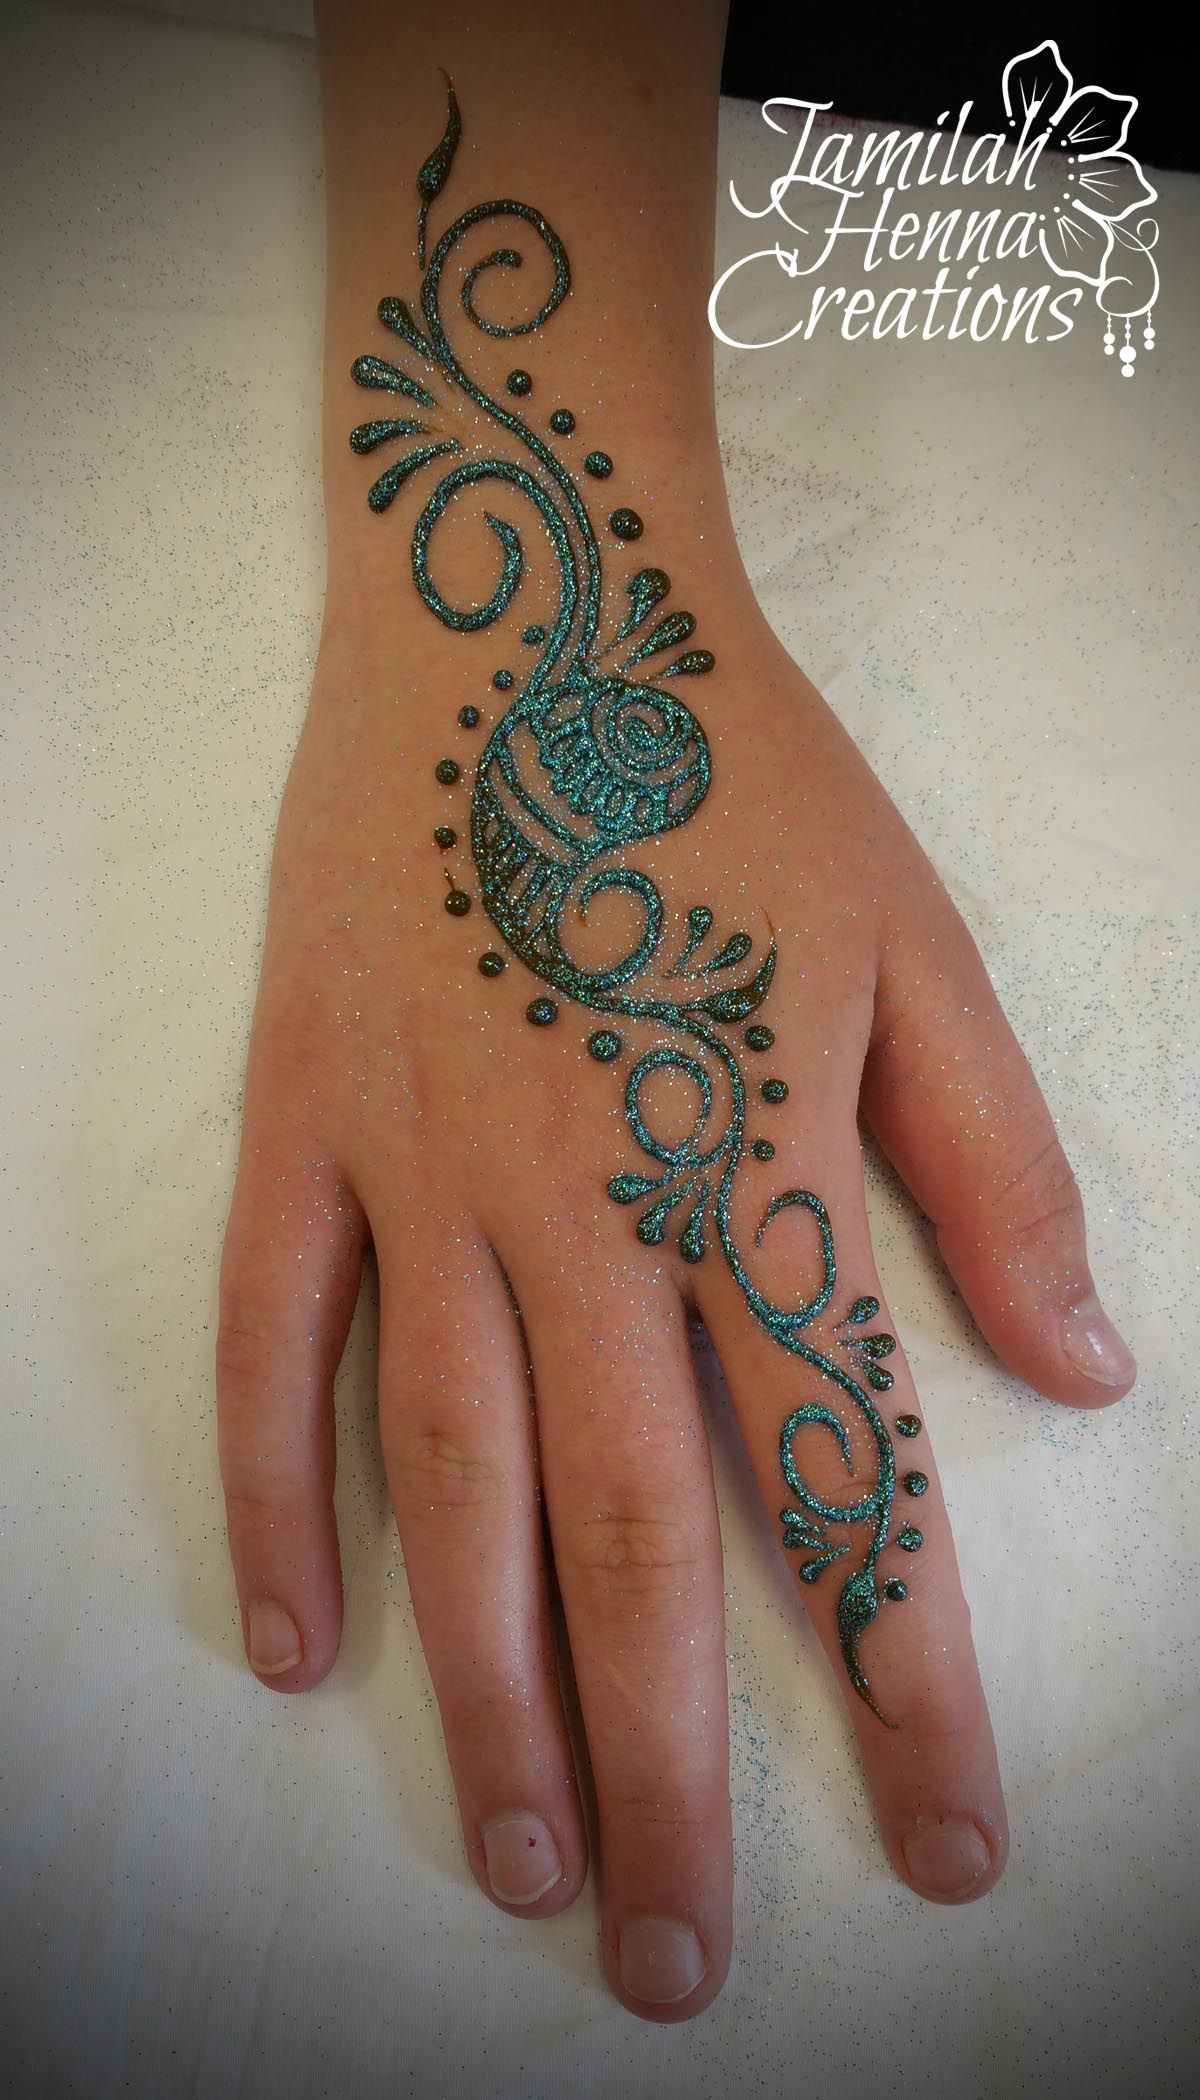 Simple Henna Tattoo Designs For Feet: Paisley Henna Swirls Www.jamilahhennacreations.com